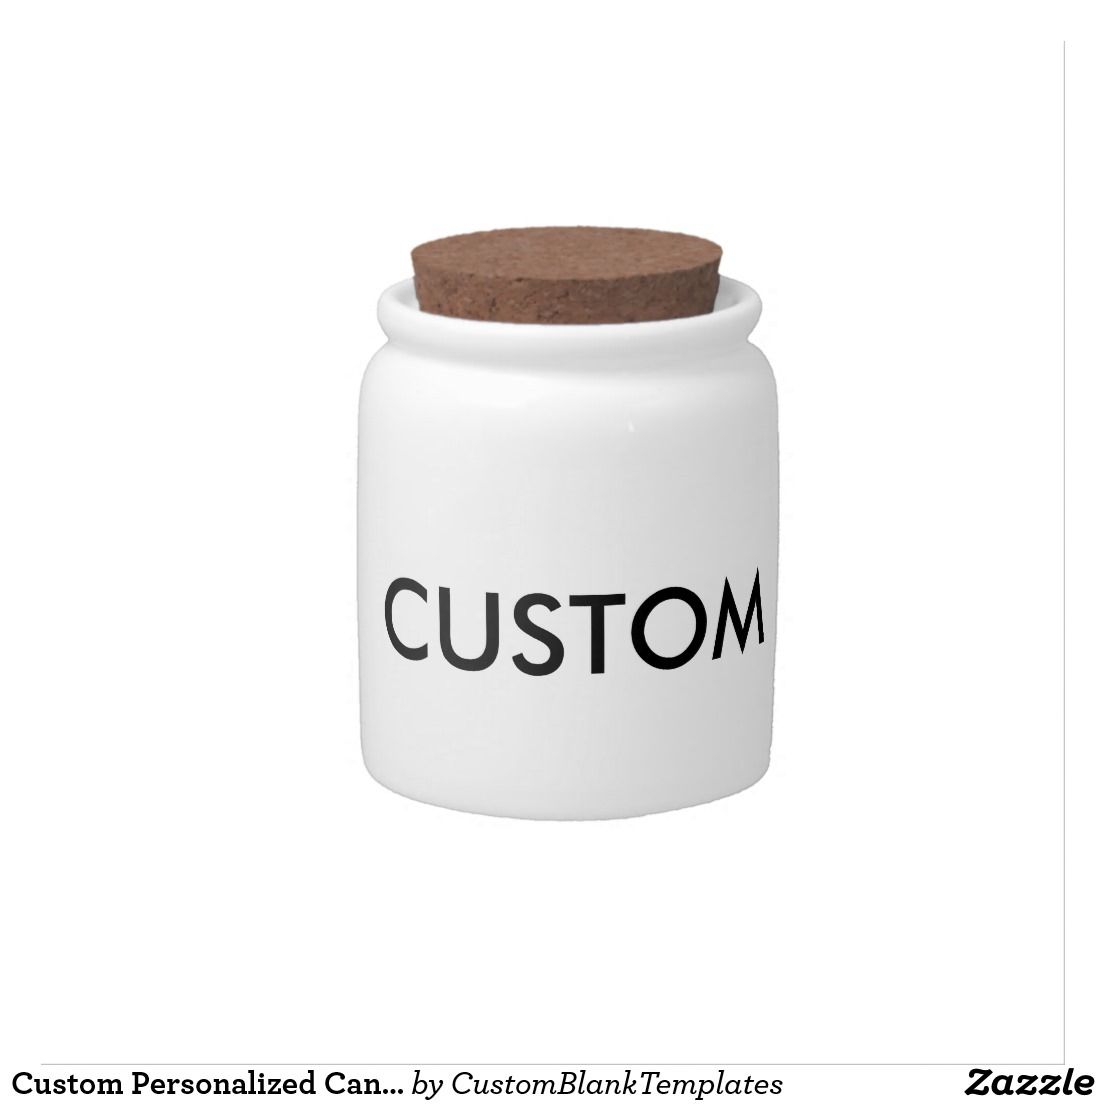 Custom Personalized Candy Jar Blank Template | Personalized candy